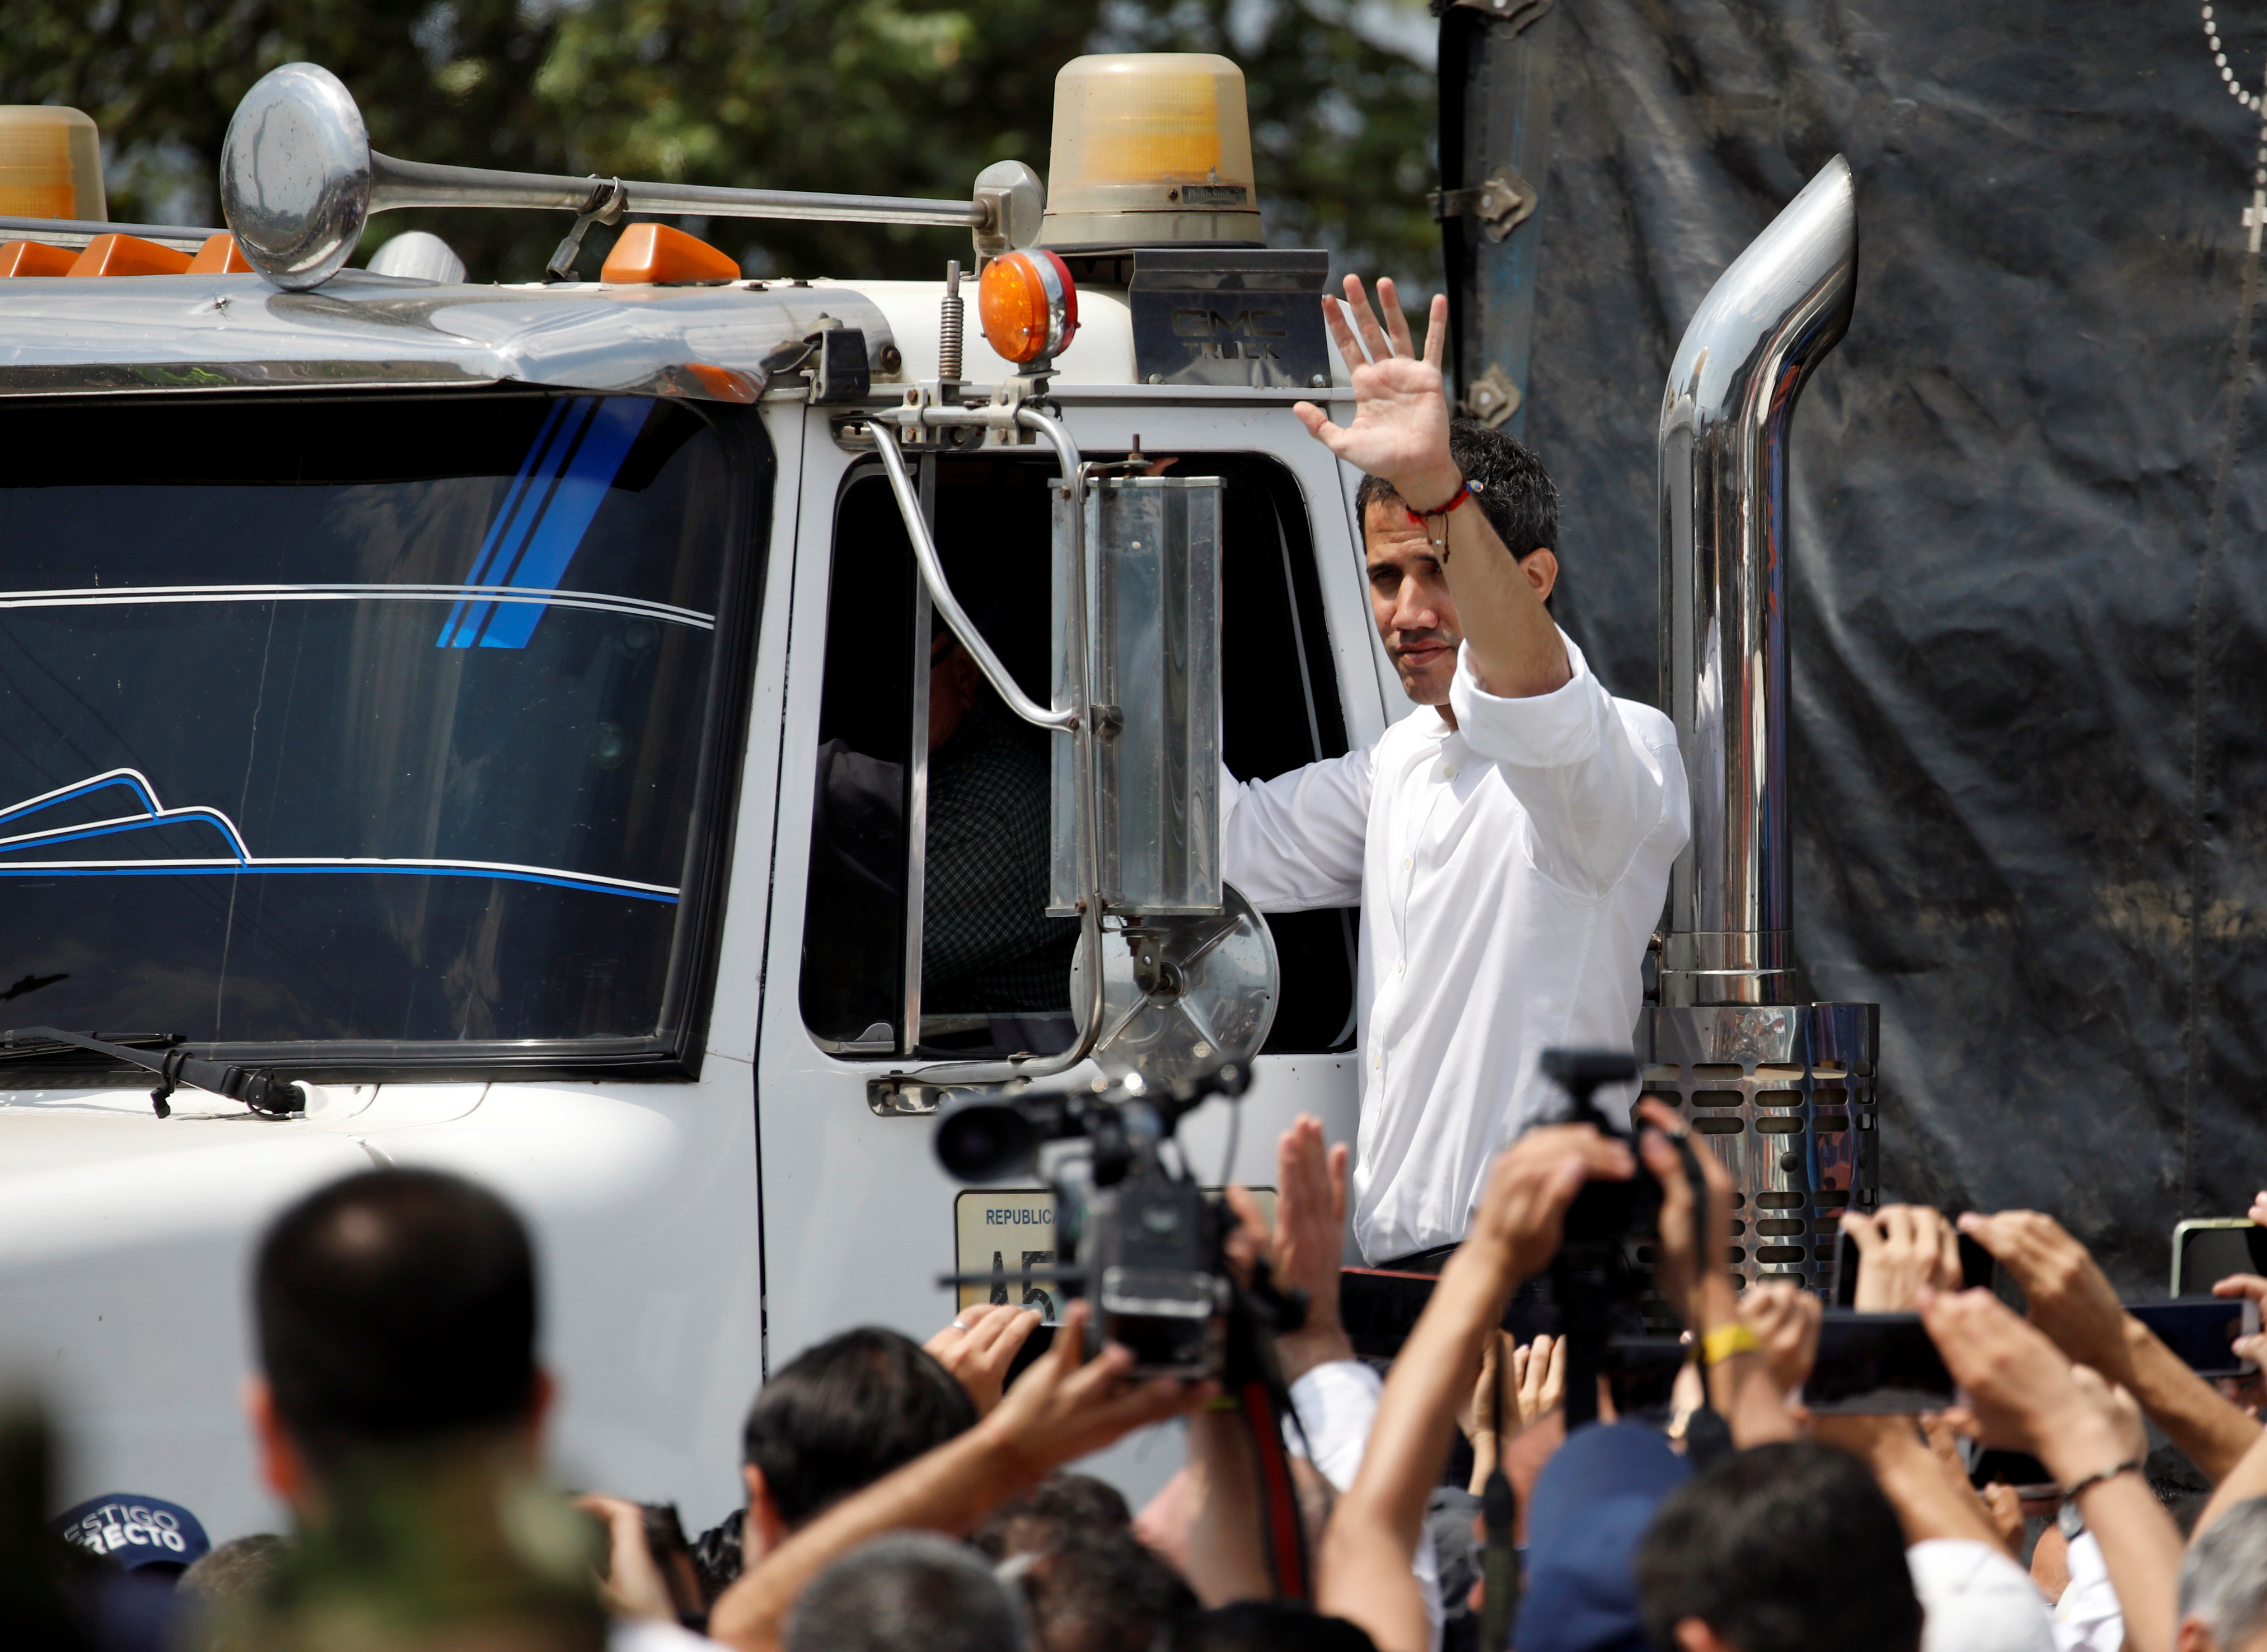 Venezuelan opposition leader Juan Guaido, who many nations have recognized as the country's rightful interim ruler gestures while standing on a truck carrying humanitarian aid for Venezuela in the area of a warehouse where humanitarian aid for Venezuela has been collected in Cucuta, Colombia, February 23, 2019. REUTERS/Marco Bello